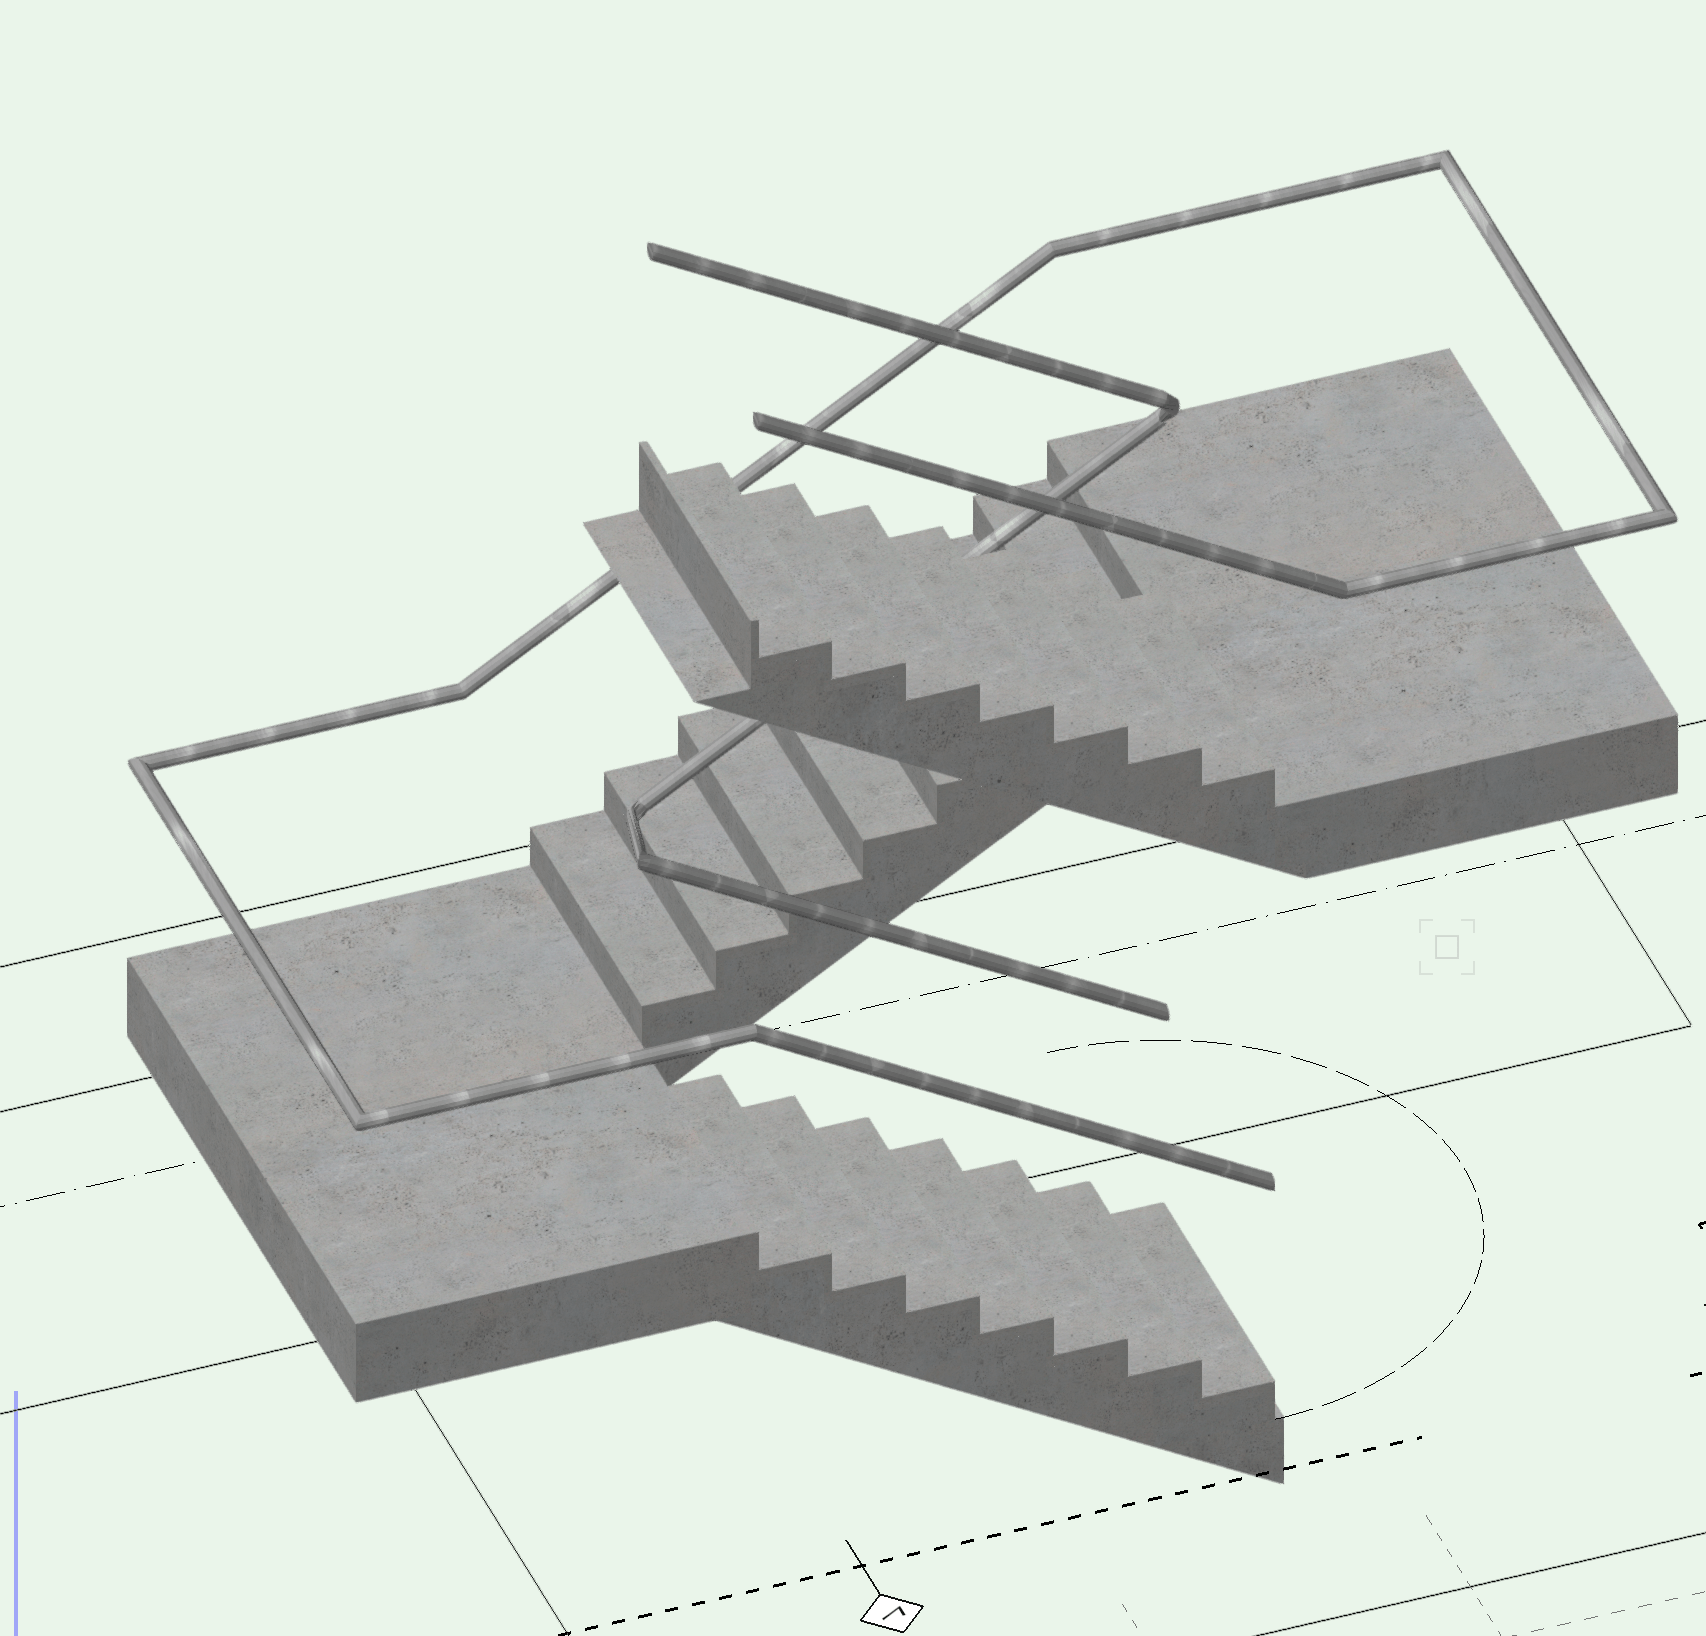 U Shaped Stairs Problem With U Shape Stair Section - General Discussion